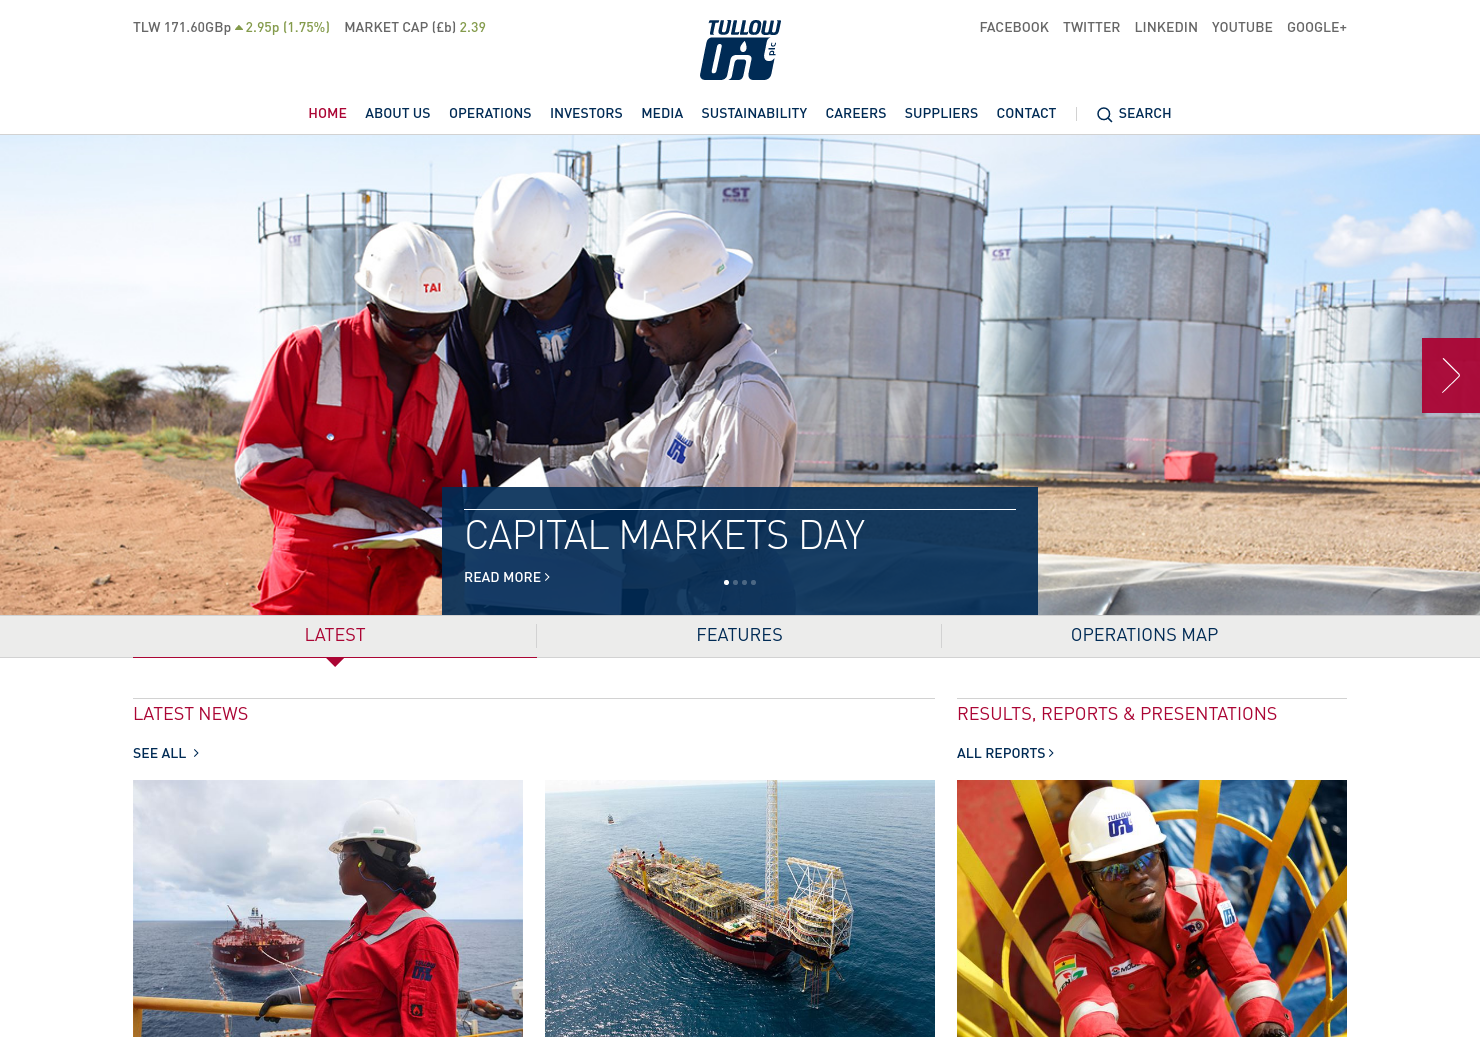 Tullow Oil Home Page